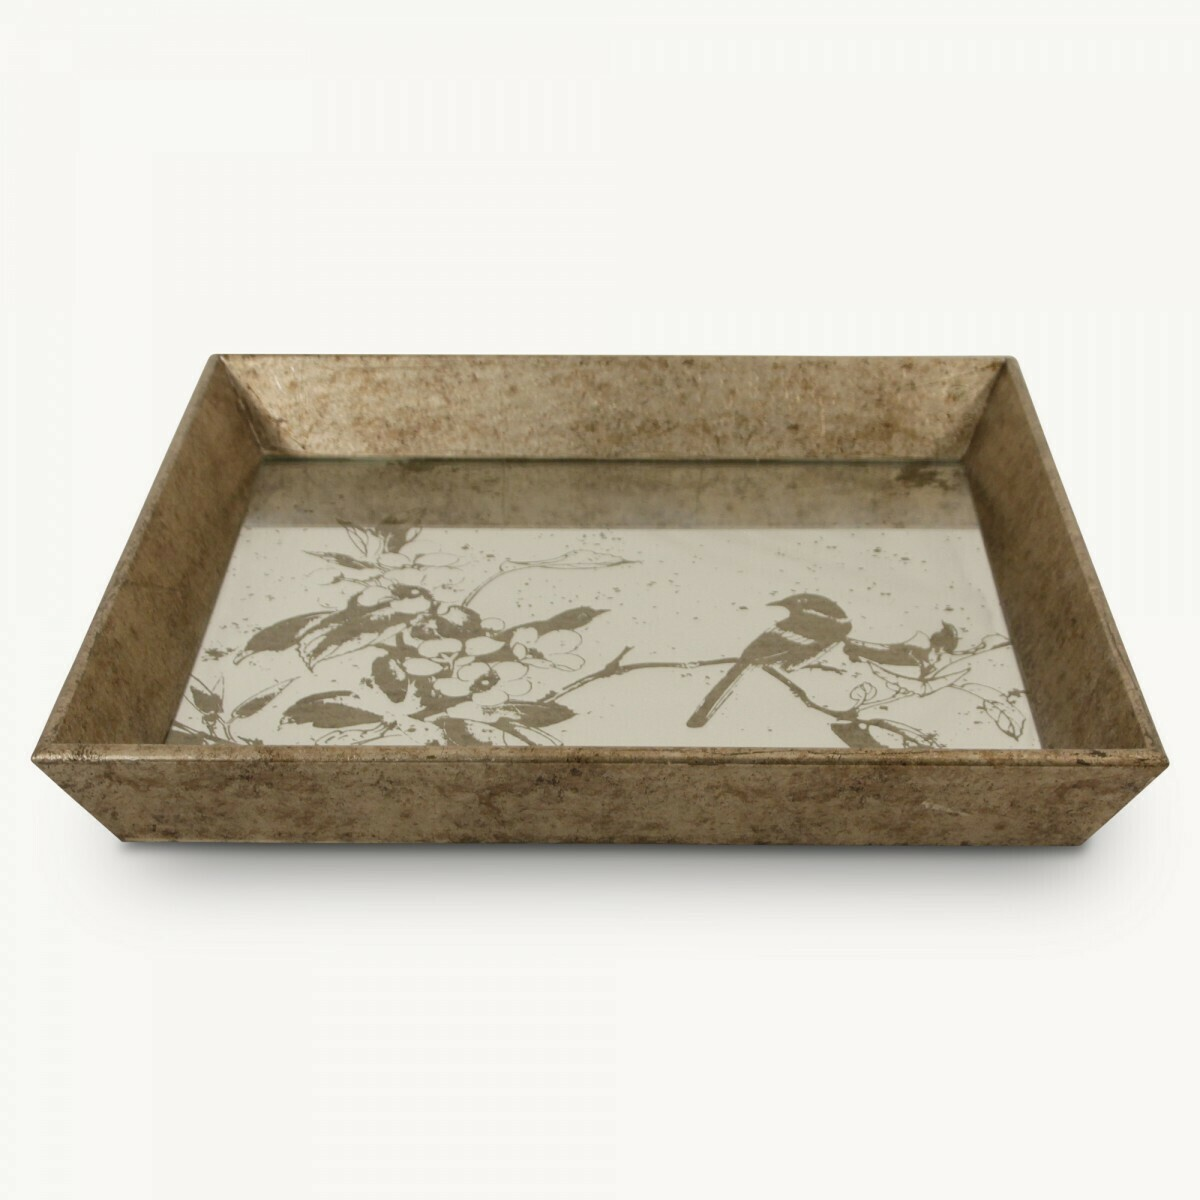 Bird Mirrored Tray